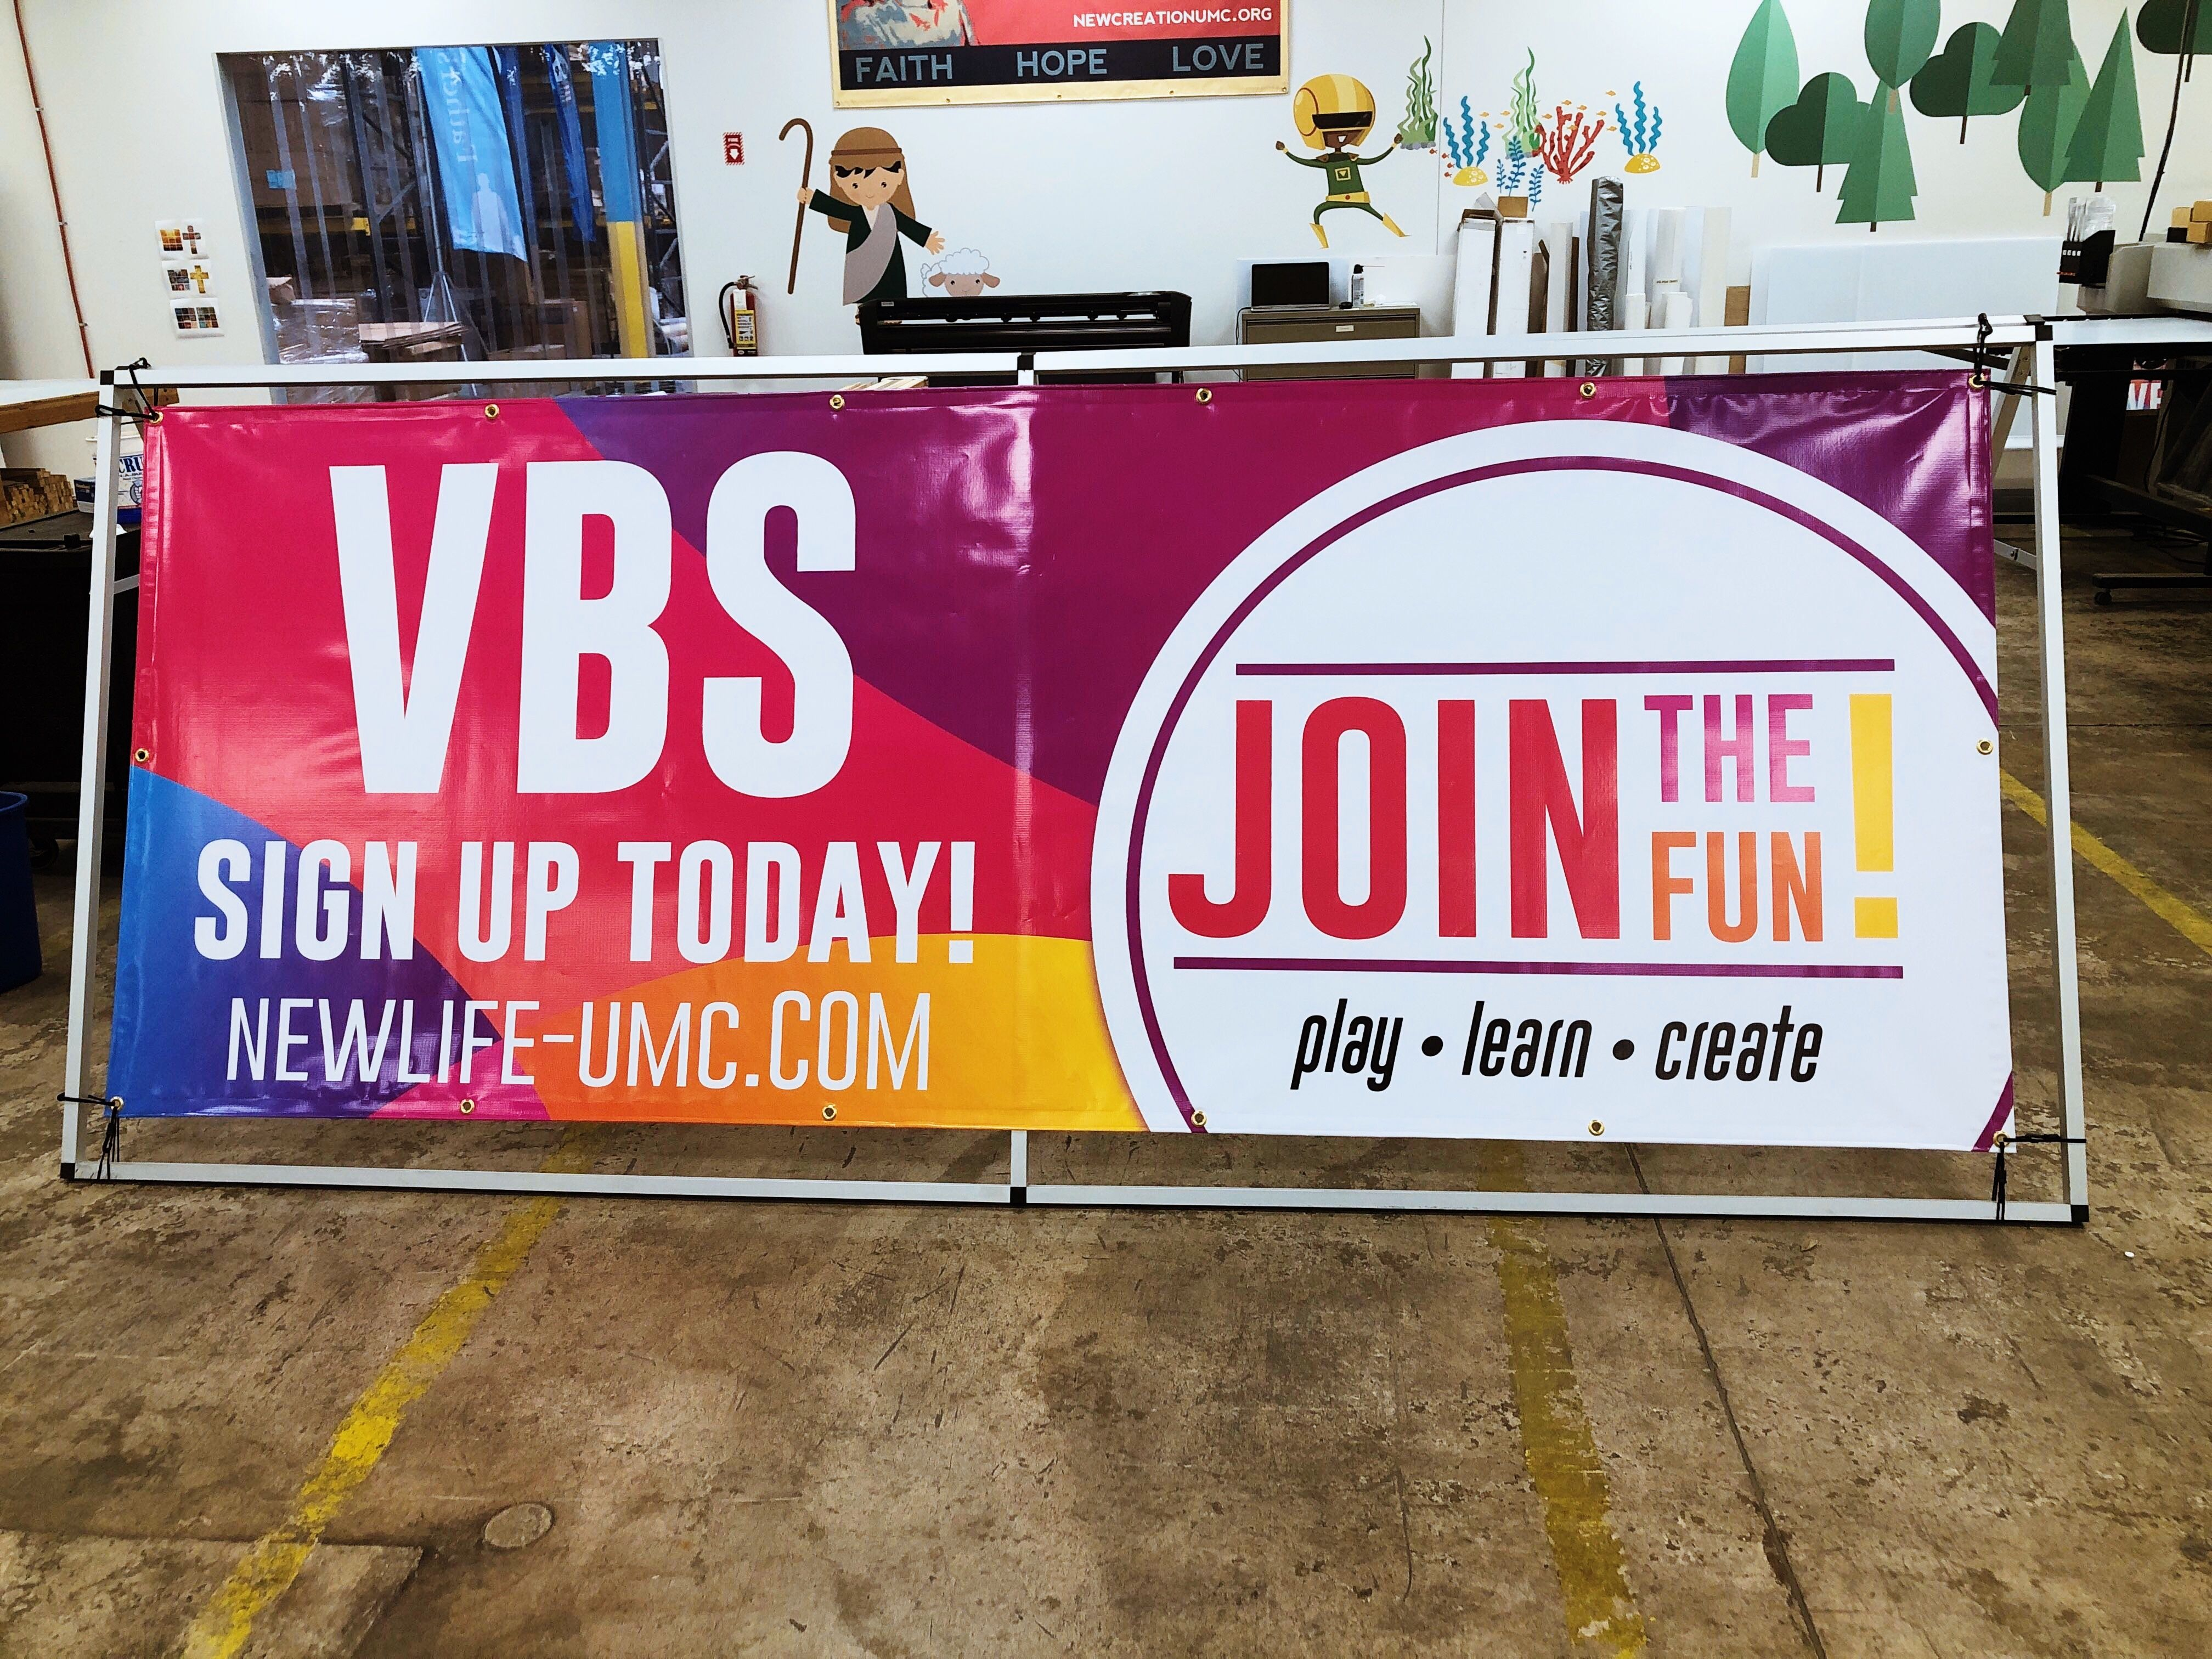 Curved Colors Vbs Join The Fun 3x8 Banner Outreach Outdoor Vinyl Banners Outdoor Banners Church Diy